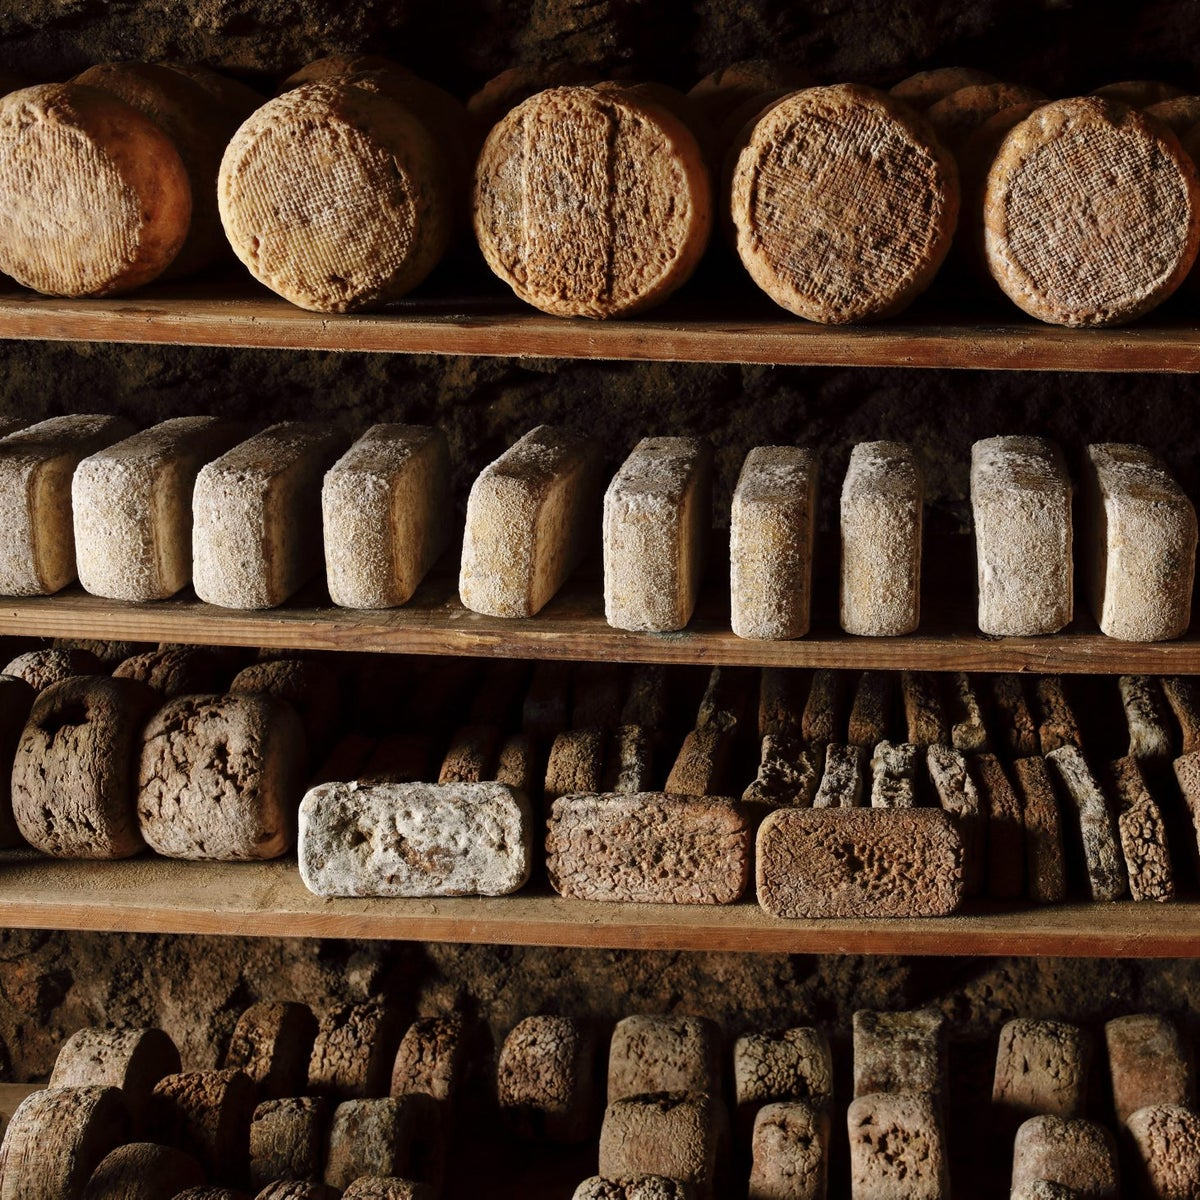 Rare cheeses ageing at Har Eitan Farm. Some are as much as five or six years old.